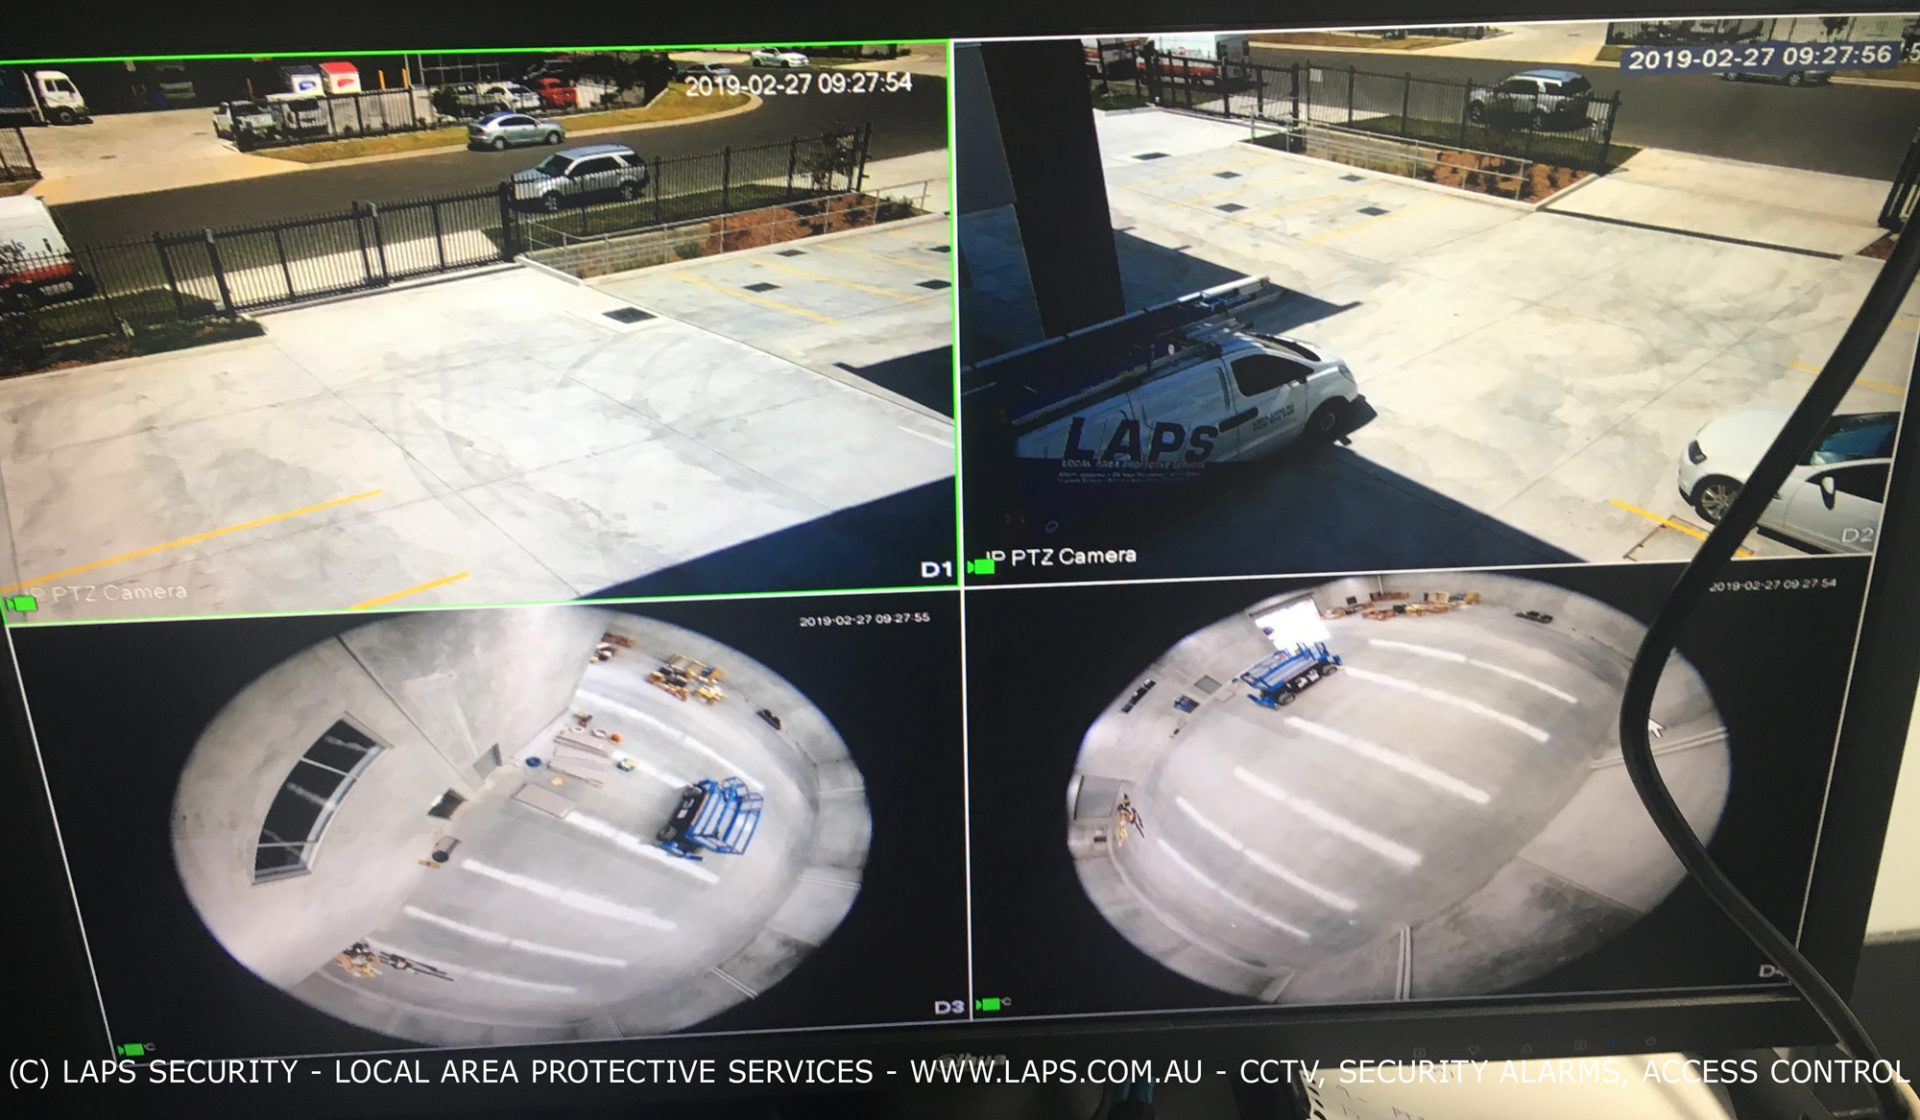 Surveillance images on NVR recorder